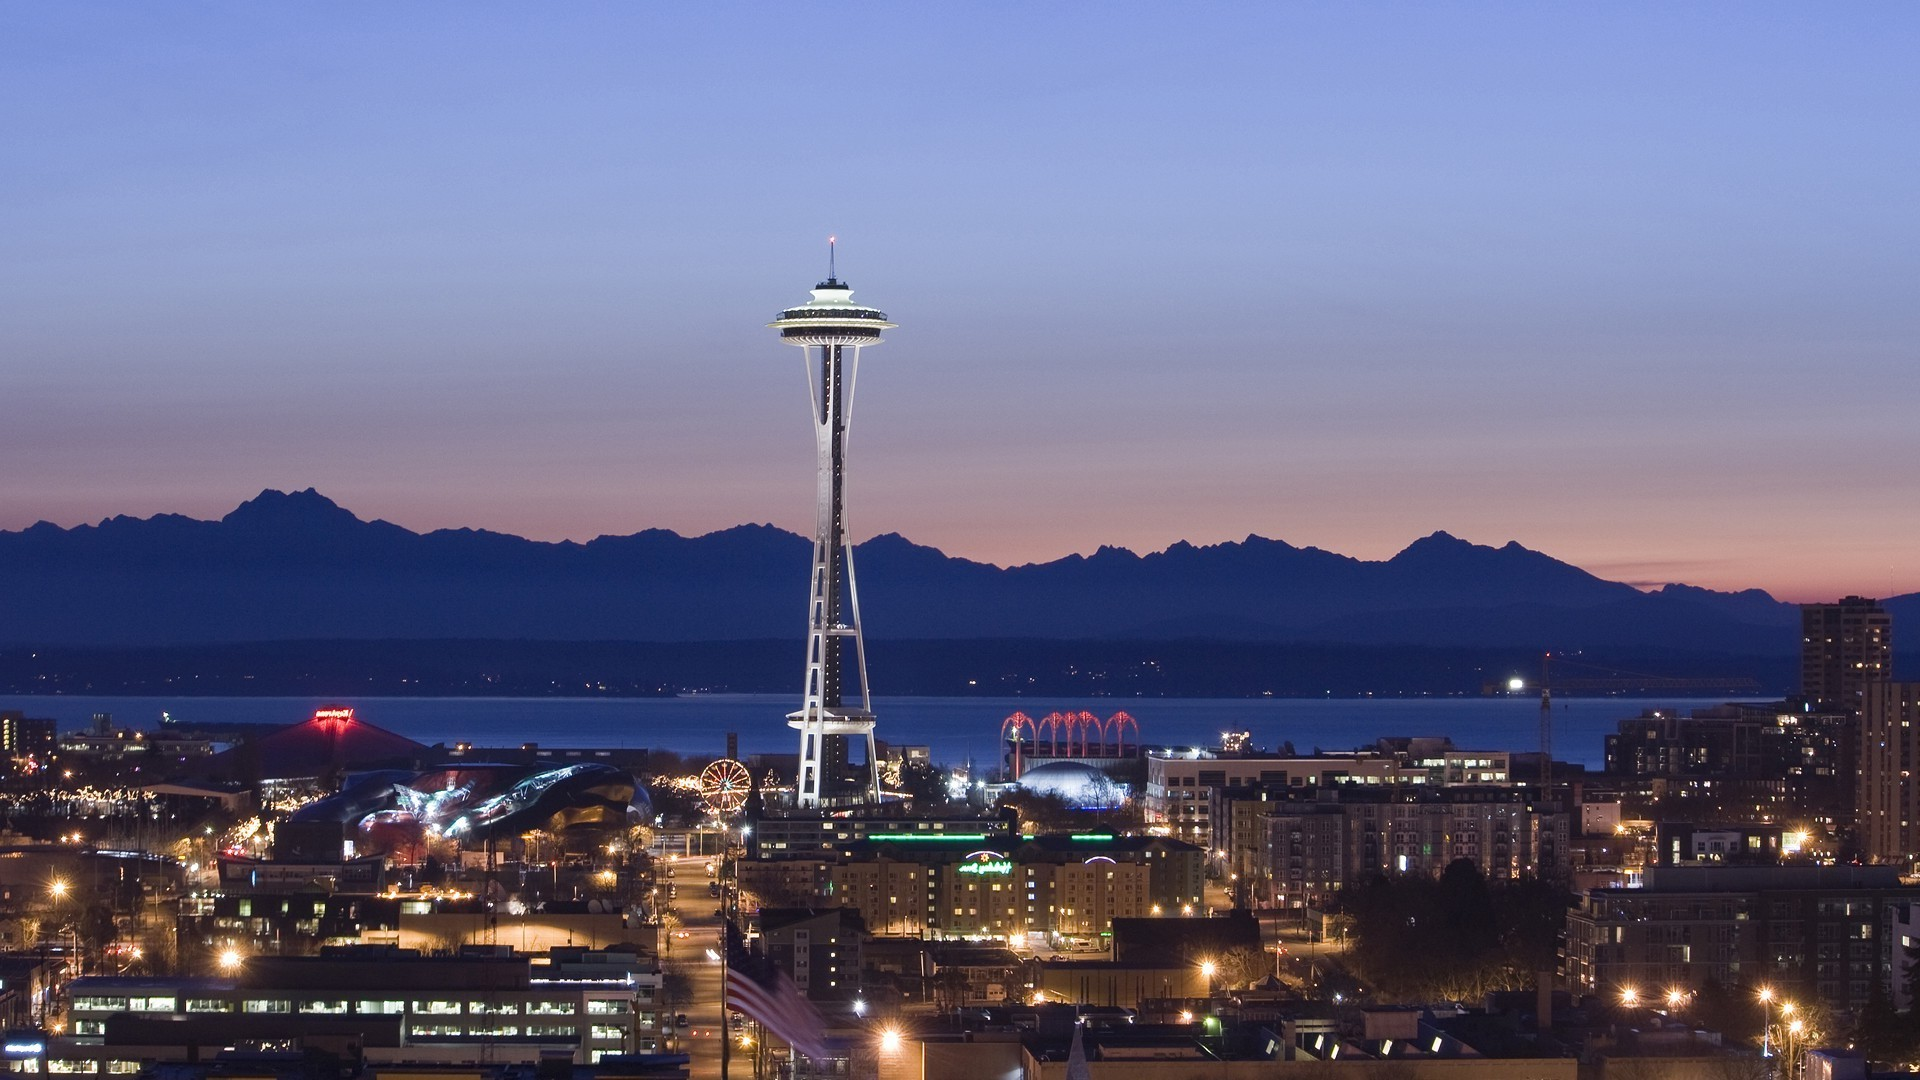 Seattle, Space Needle, Pacific Northwest, USA, Washington State, City,  Sunset, Lights, Evening Wallpapers HD / Desktop and Mobile Backgrounds